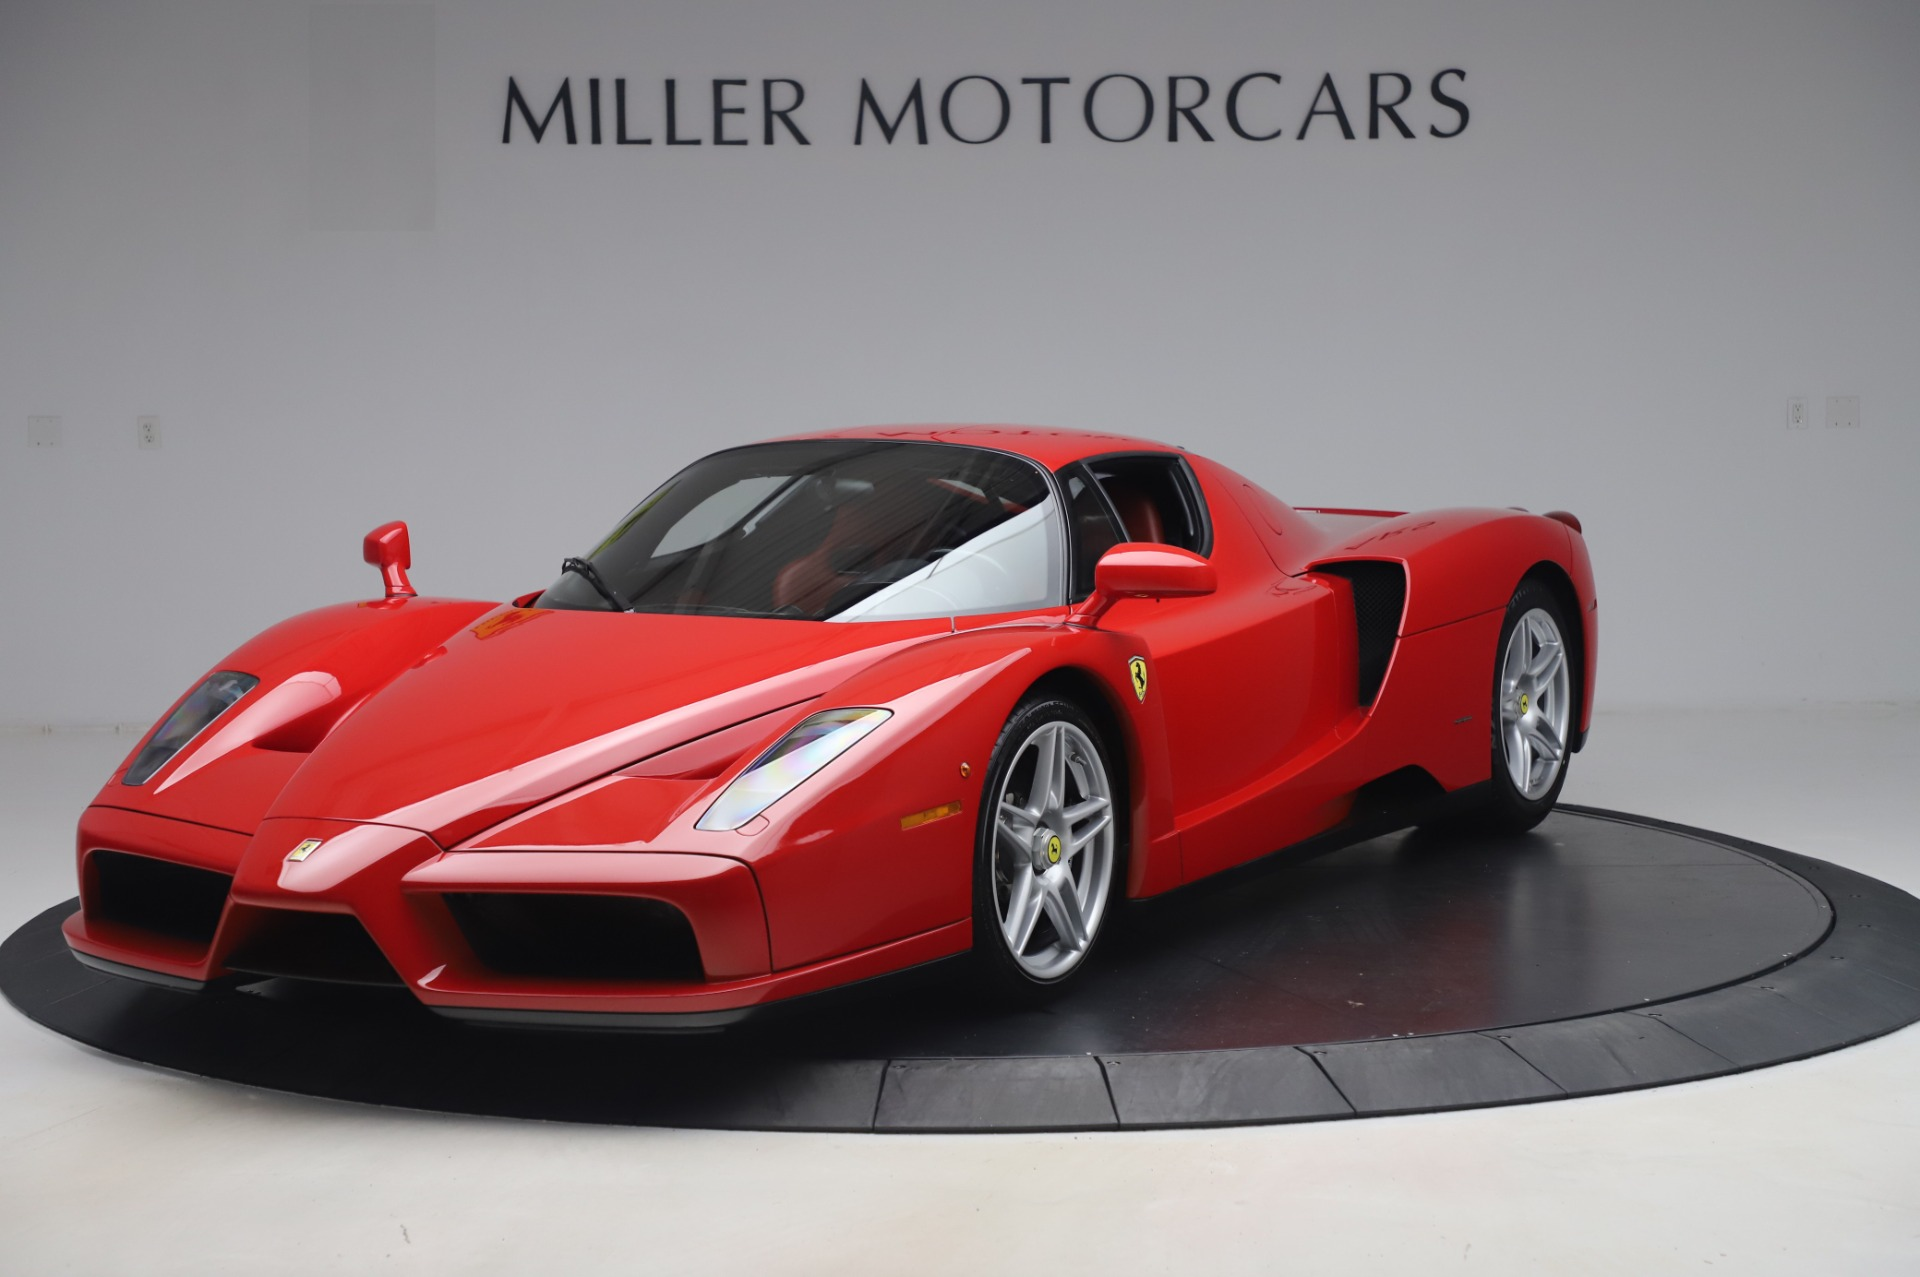 Used 2003 Ferrari Enzo for sale $3,195,000 at Pagani of Greenwich in Greenwich CT 06830 1